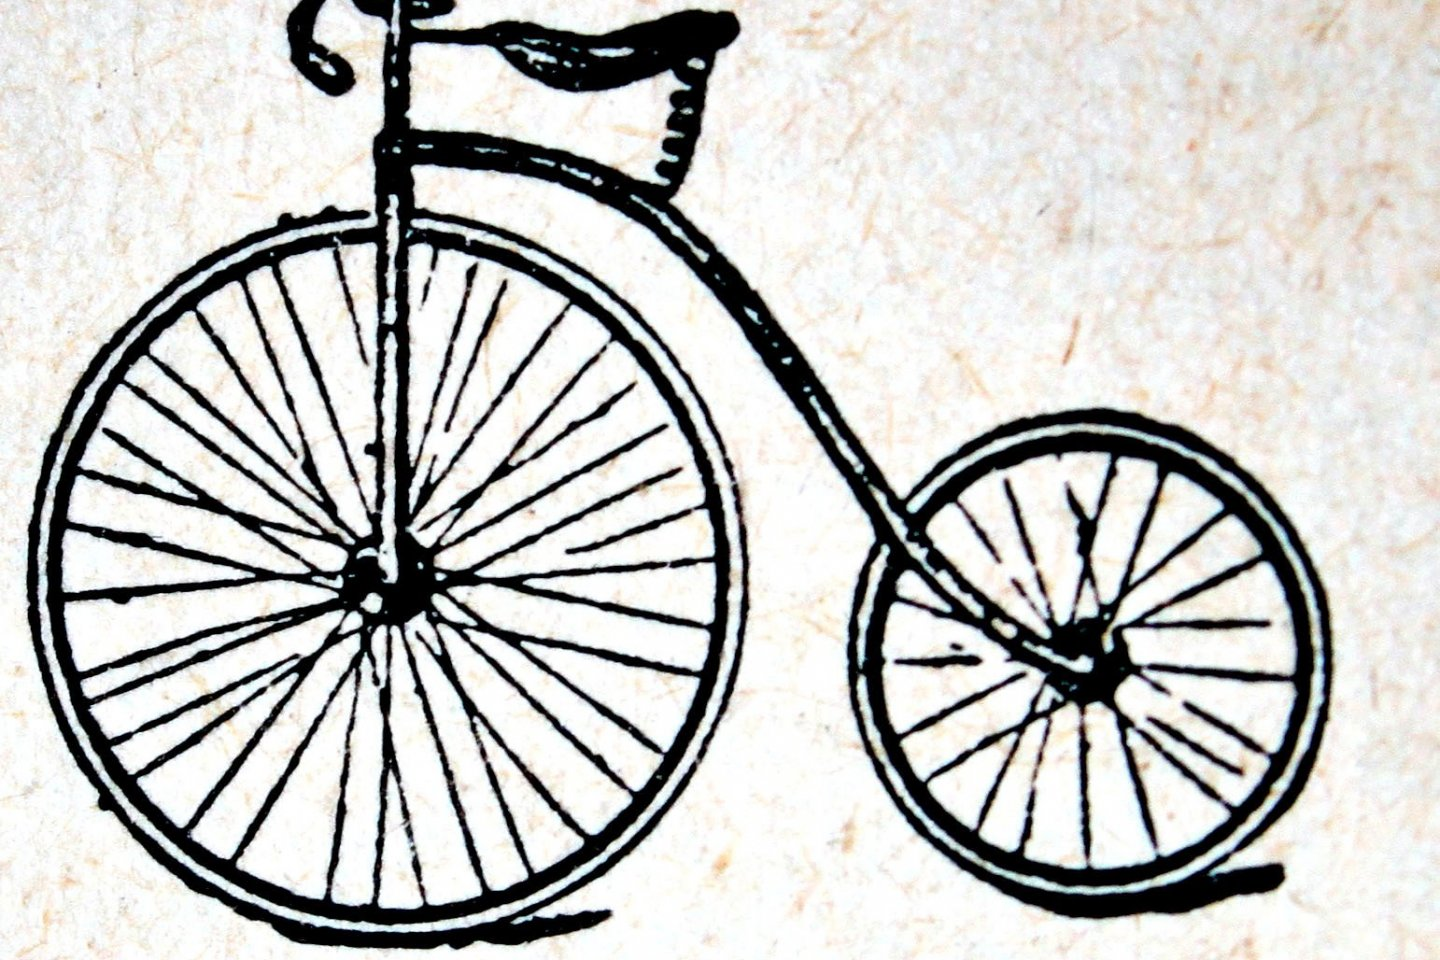 Bicycles have inspired a range of artworks, and an event at the Tokushima Modern Art Museum explores a variety of them